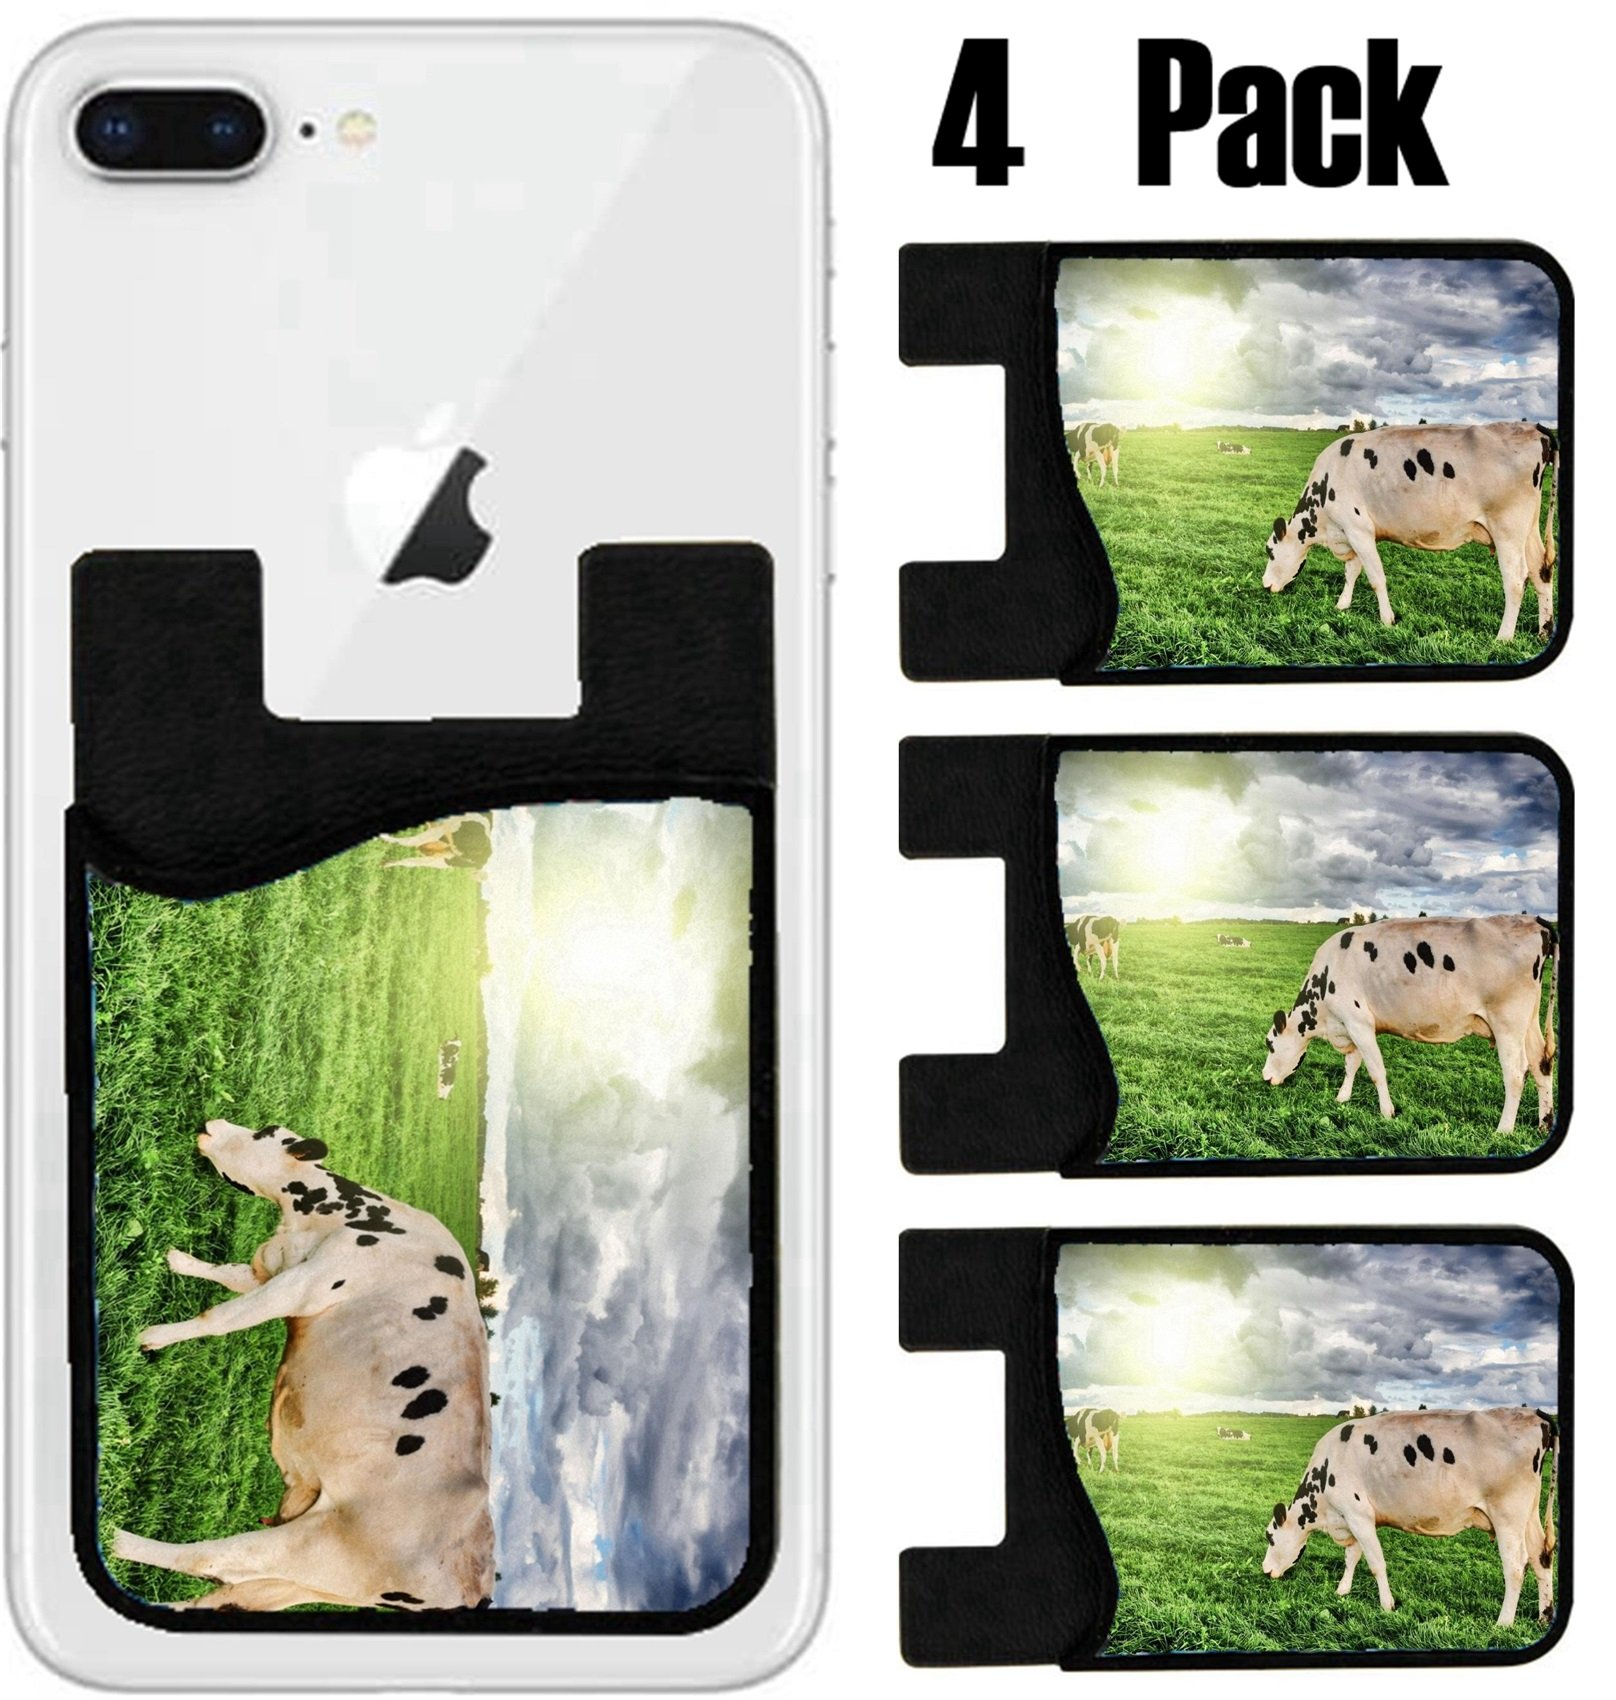 MSD Phone Card holder, sleeve/wallet for iPhone Samsung Android and all smartphones with removable microfiber screen cleaner Silicone card Caddy(4 Pack) IMAGE ID 36977630 Herd of cows grazing at summe